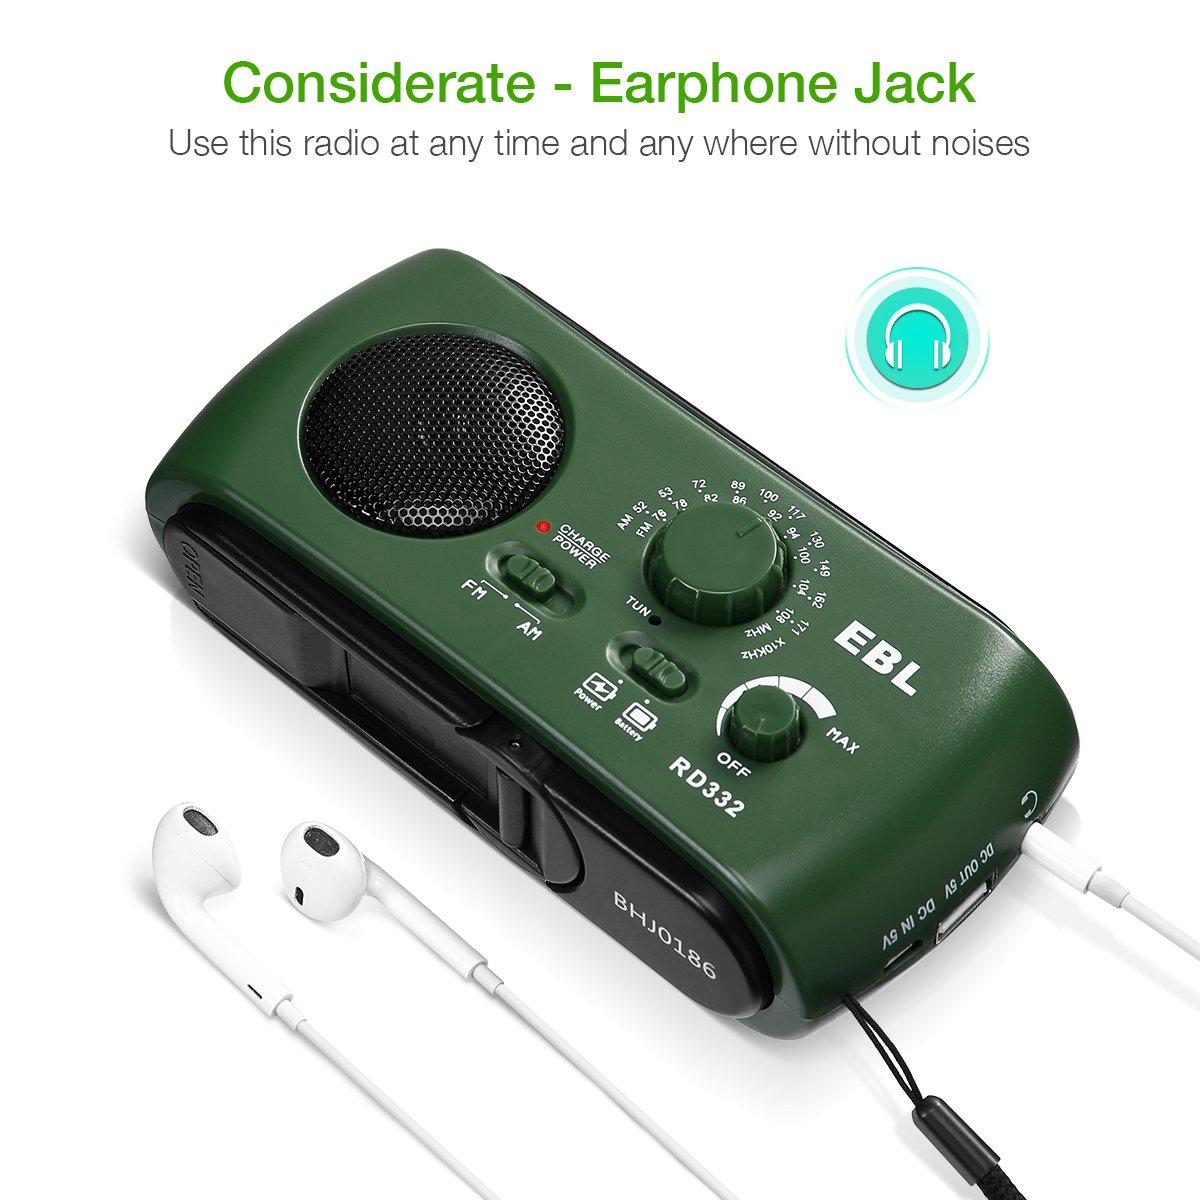 EBL Portable FM/AM Radio Emergency Solar Hand Crank Rechargeable Radio with LED Flashlight for Household Camping Traveling (Green)